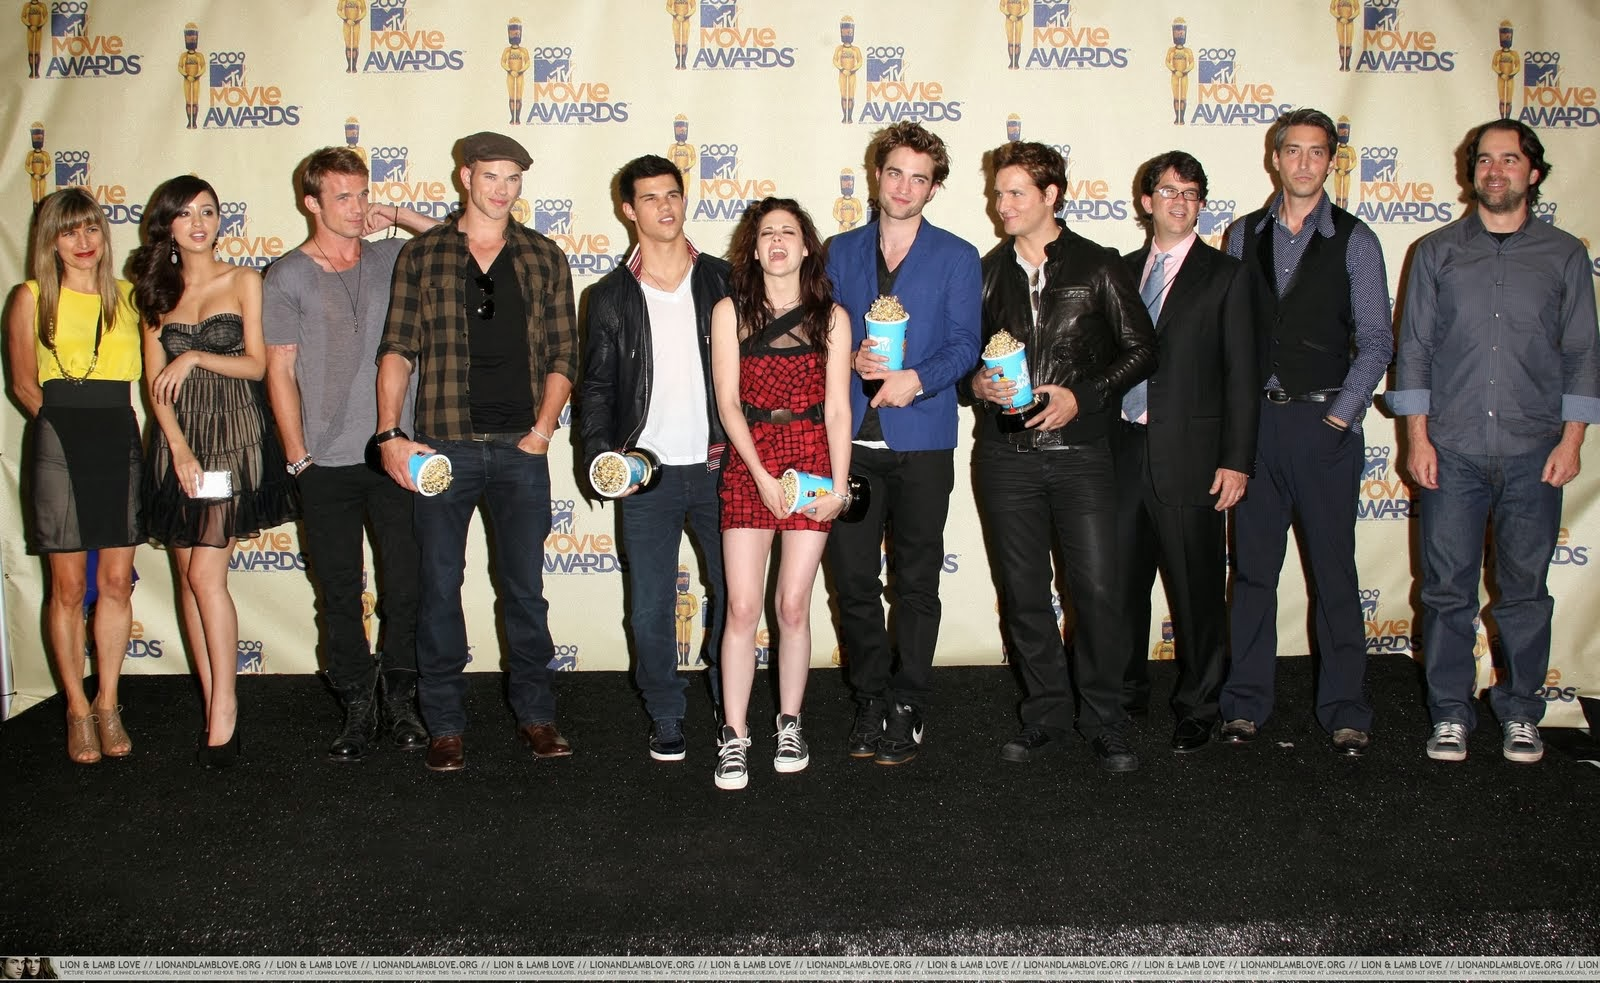 http://1.bp.blogspot.com/_ay3jhynjcos/TJ268p2jqPI/AAAAAAAAA_c/wieG18hKYQo/s1600/1-twilight-cast-mtv-movie-awards.jpg